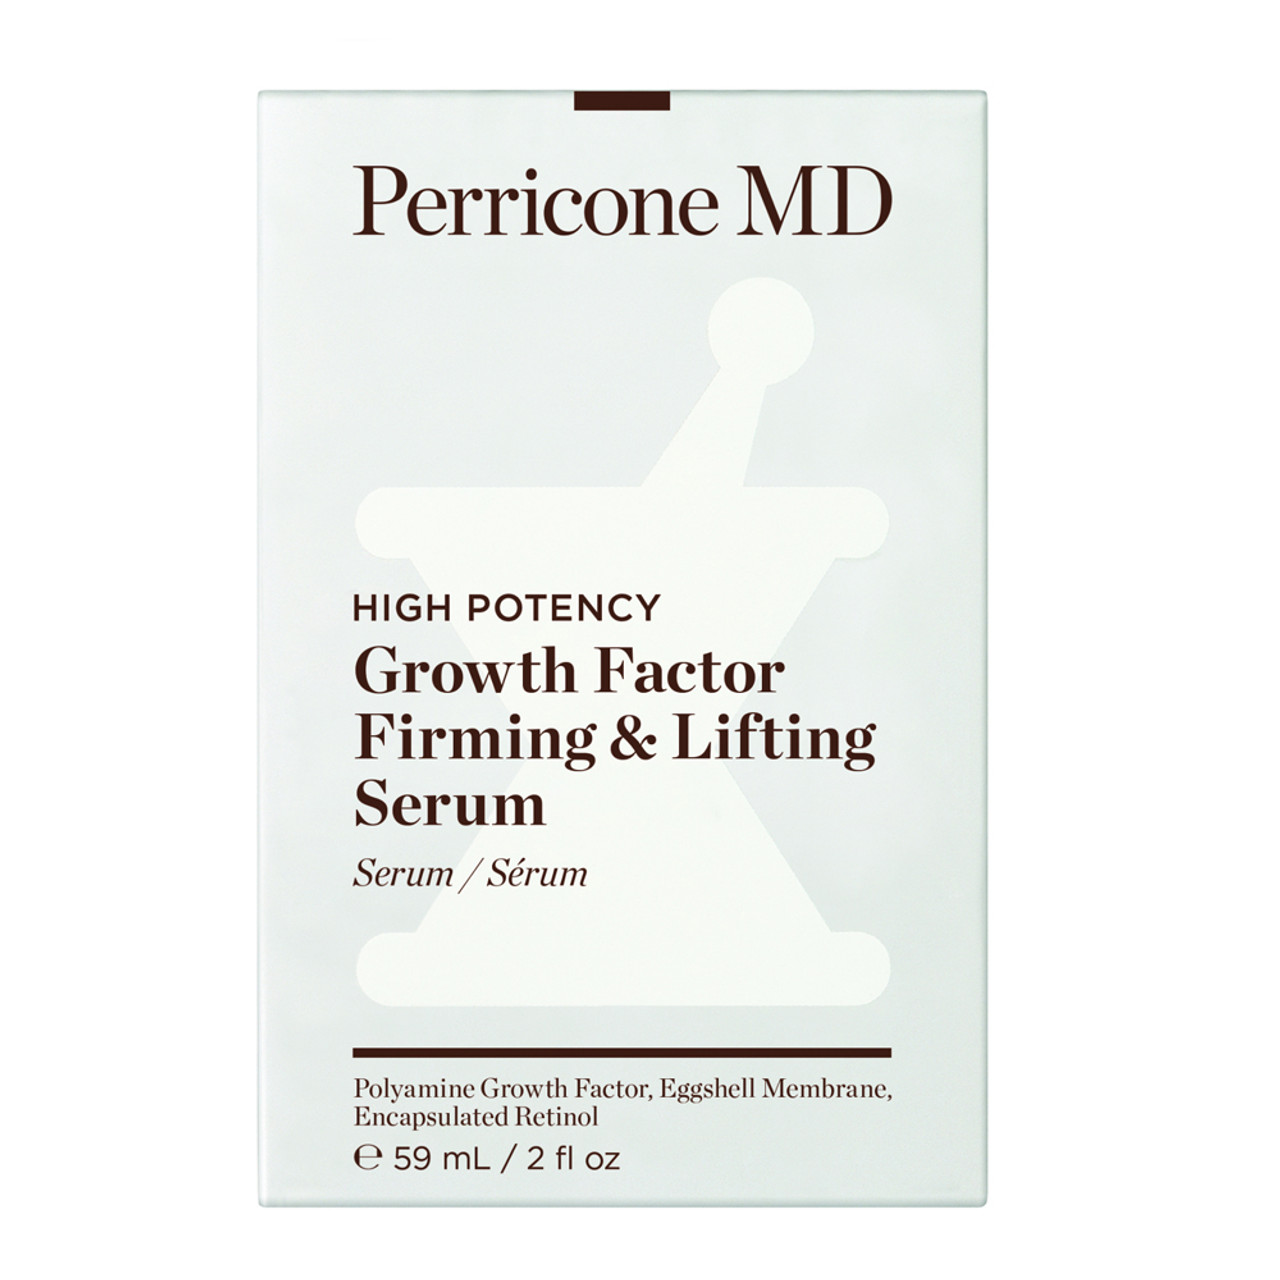 Perricone MD Growth Factor Firming & Lifting Serum